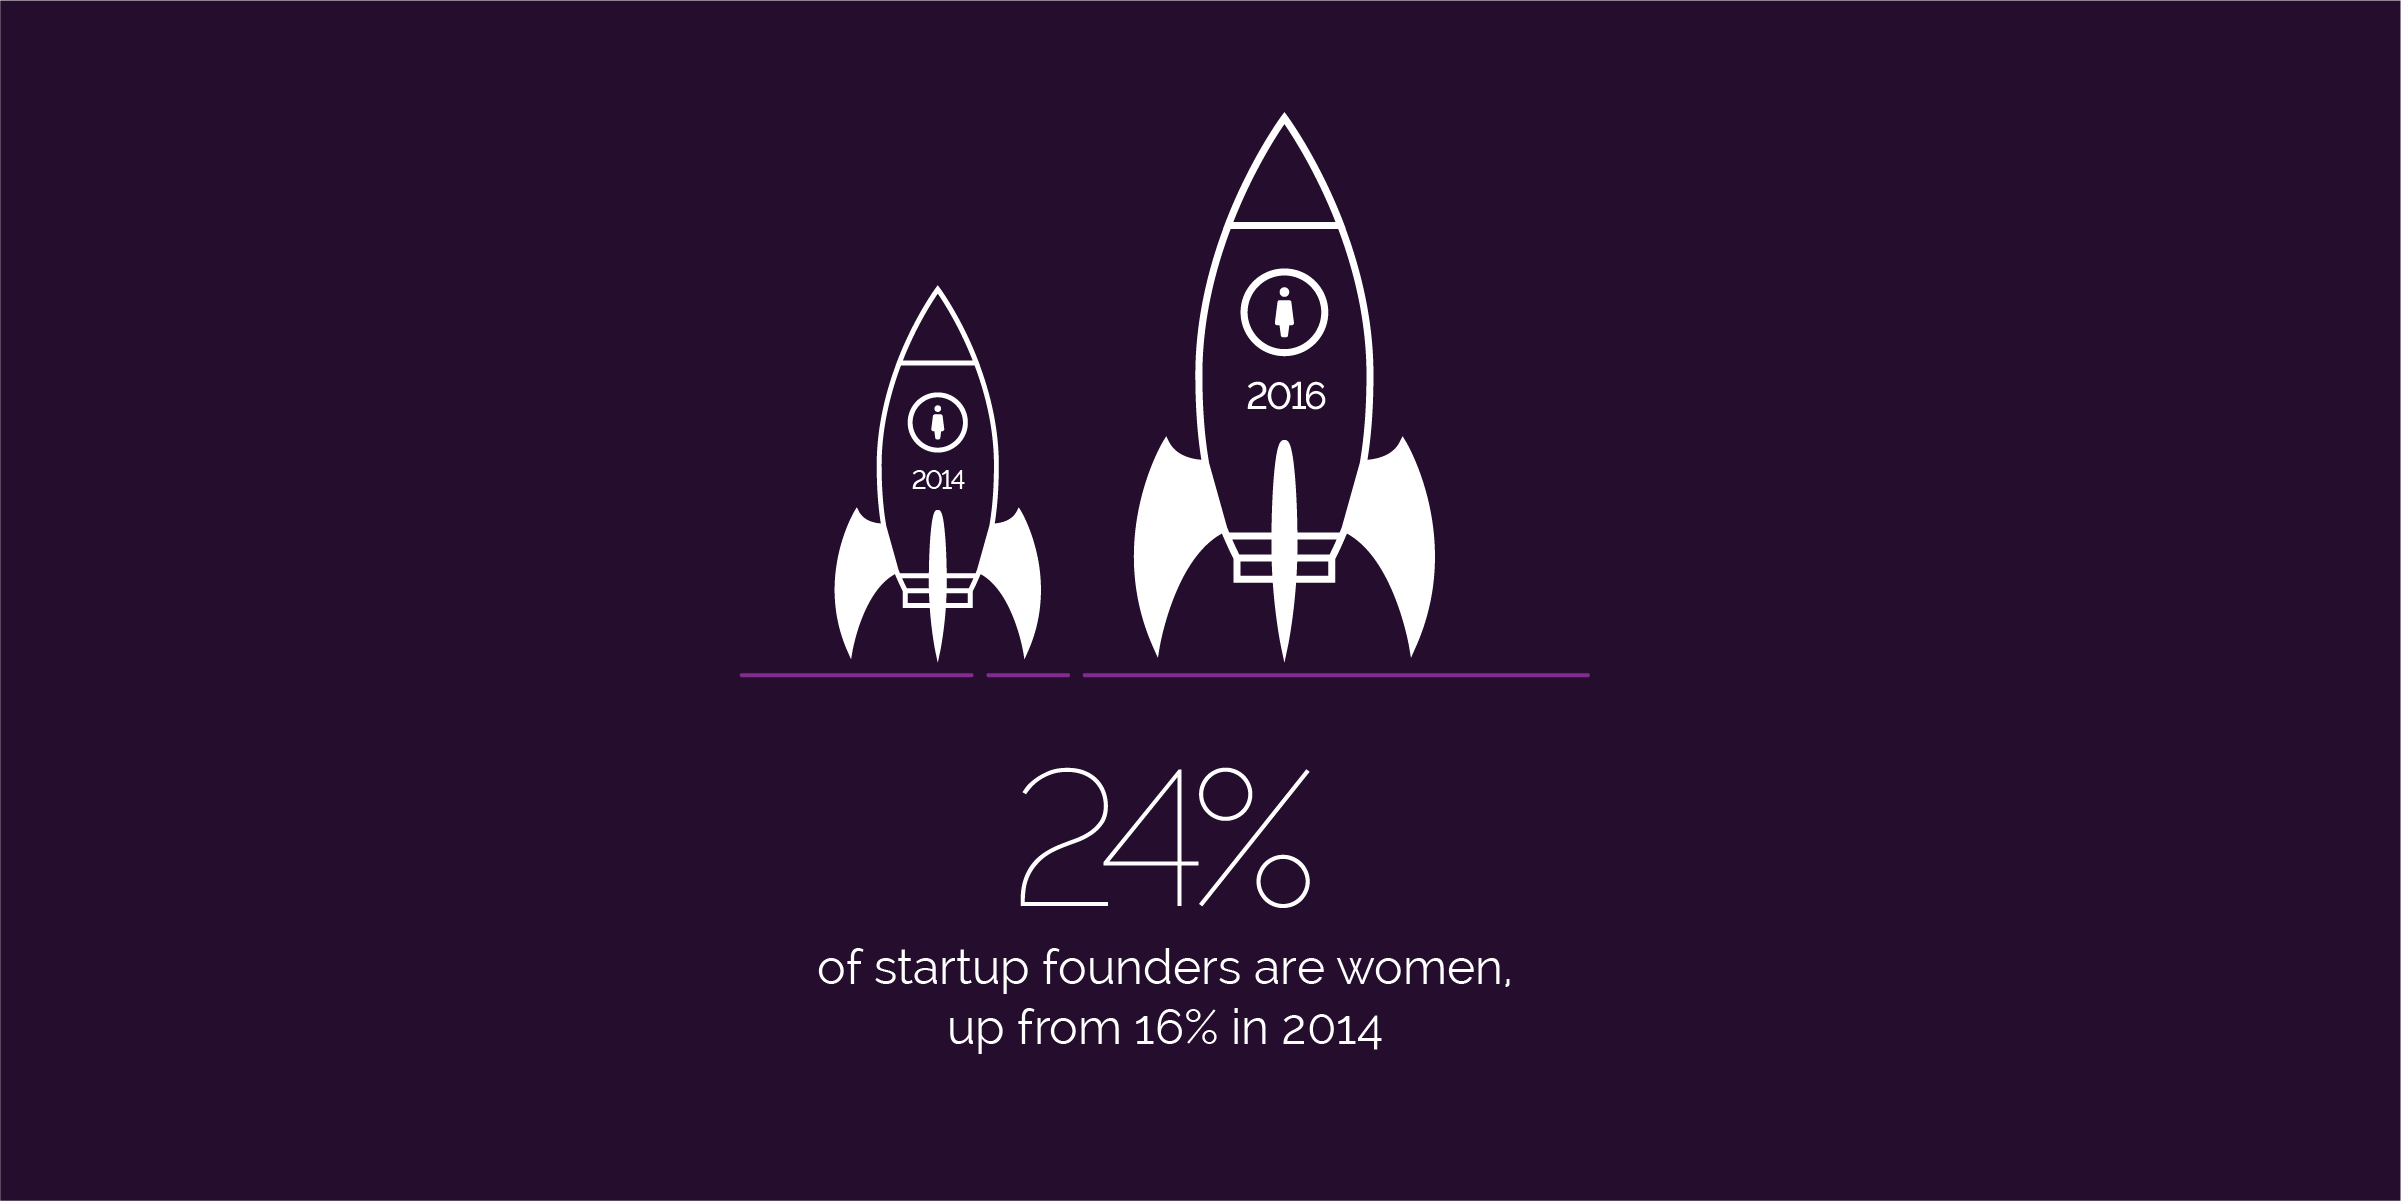 24 per cent of startup founders are women, up from 16 per cent in 2014.